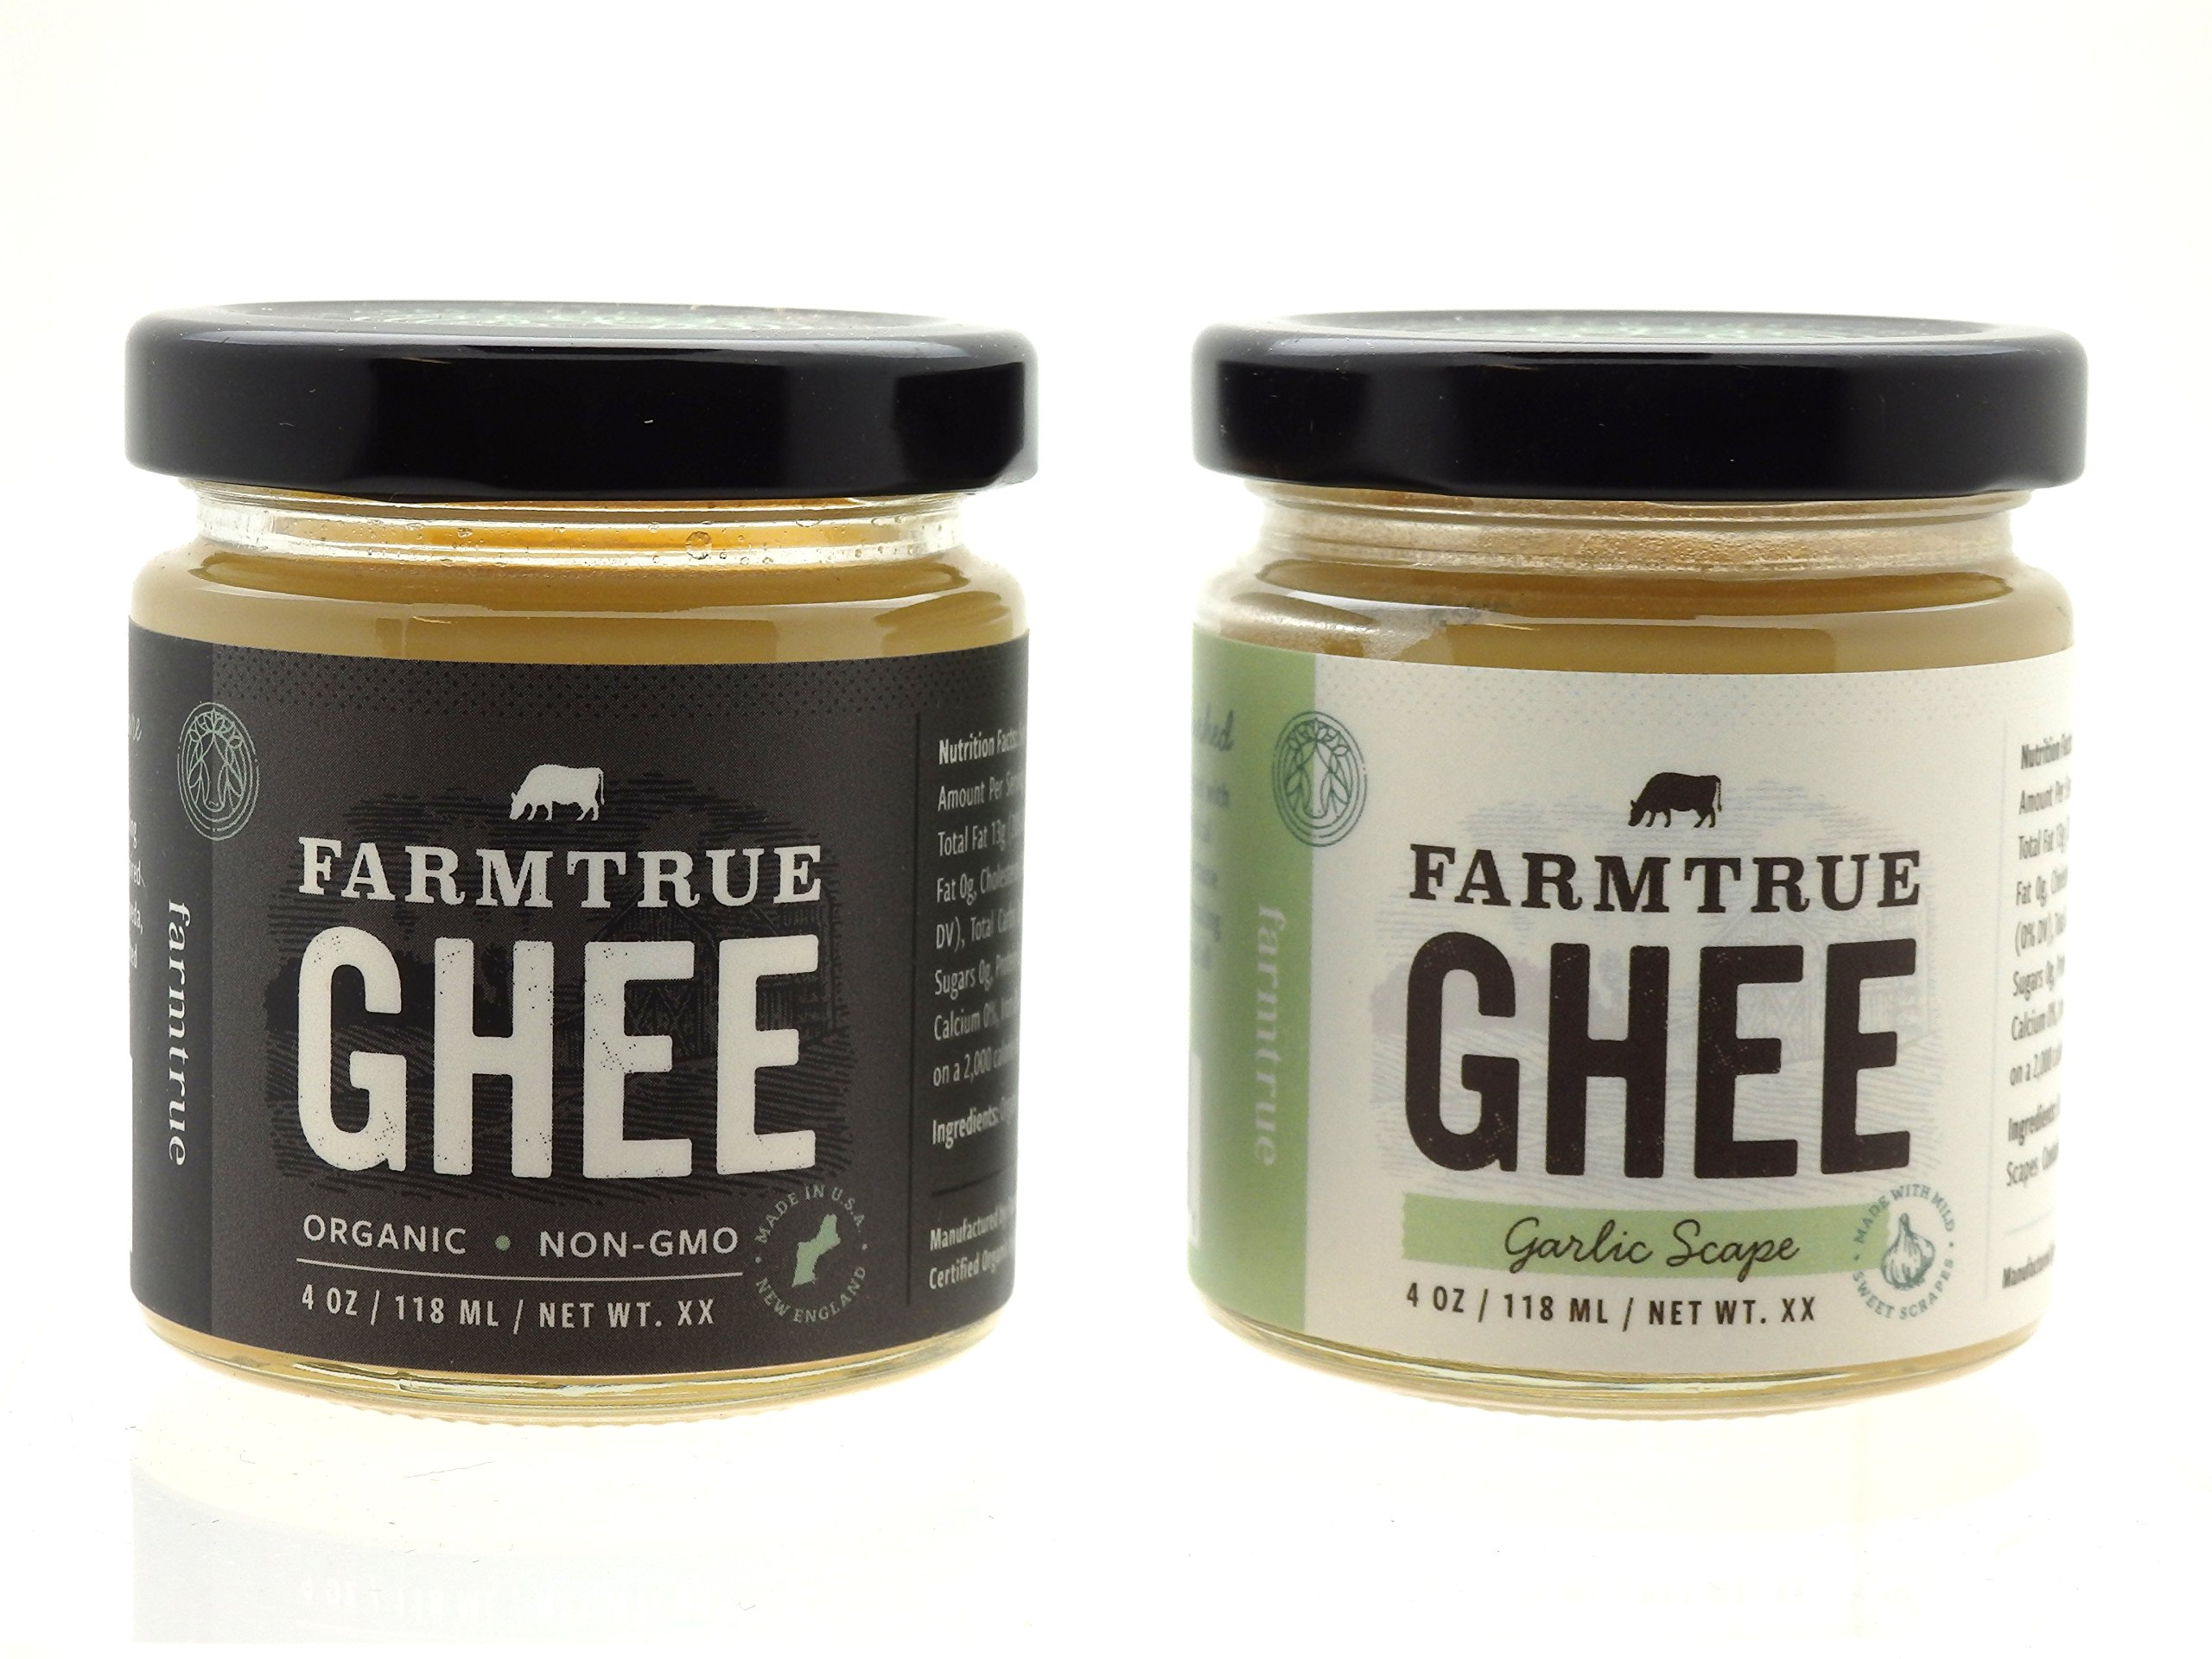 Ghee - Traditional and Garlic Scape - Gift Packaged